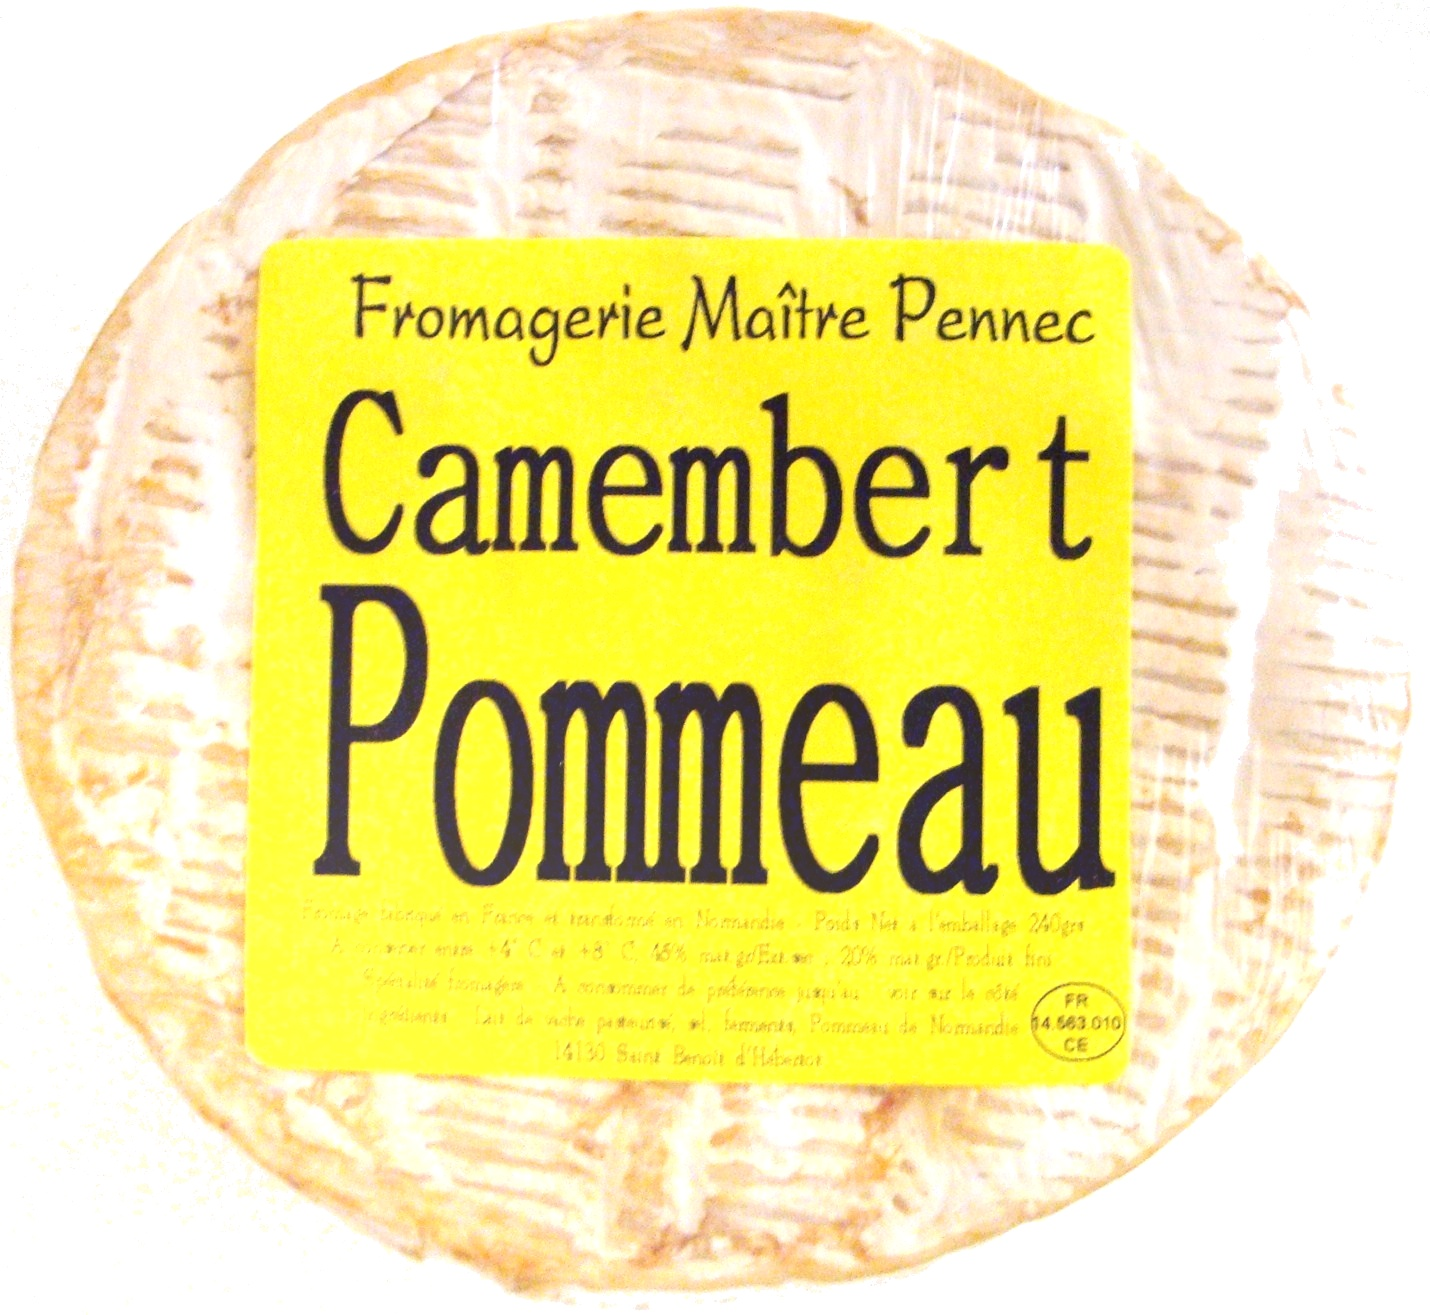 Camembert (20% MG) Pommeau - Product - fr